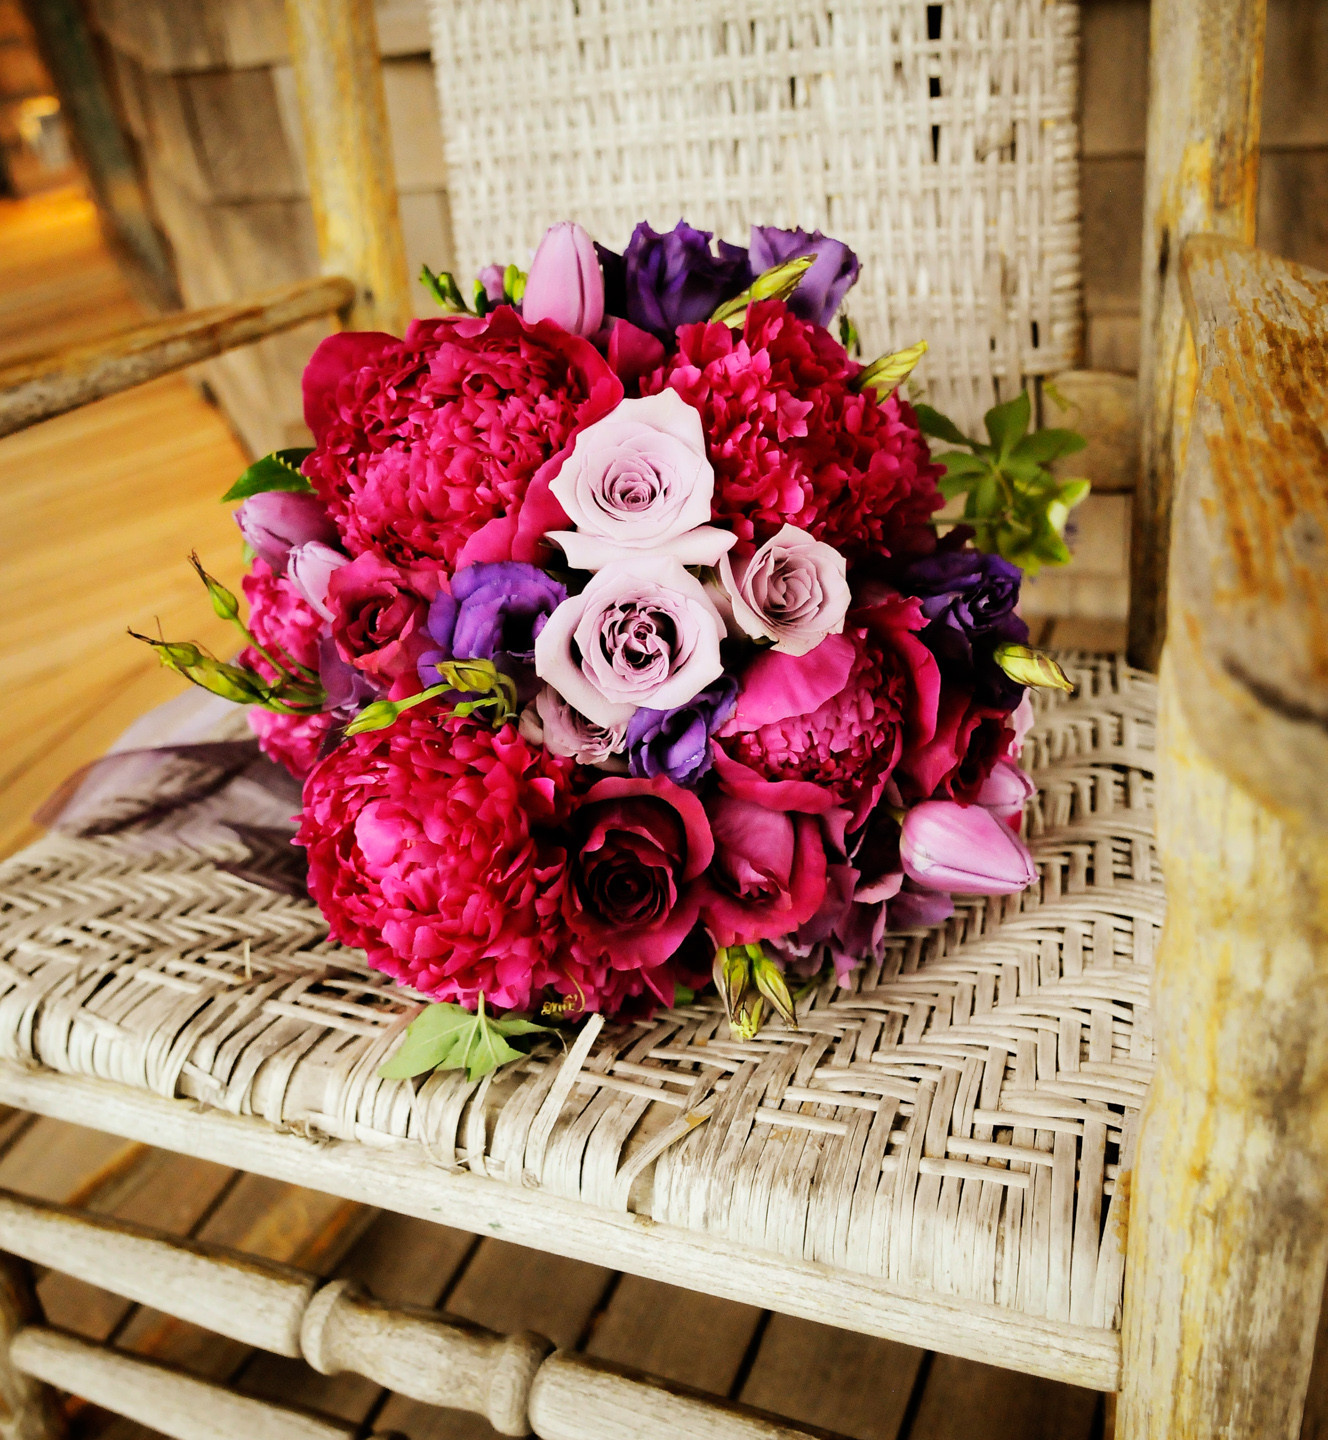 A bridal bouquet at a martha's vineyard wedding venues West Chop Club photo by David Welch Photography